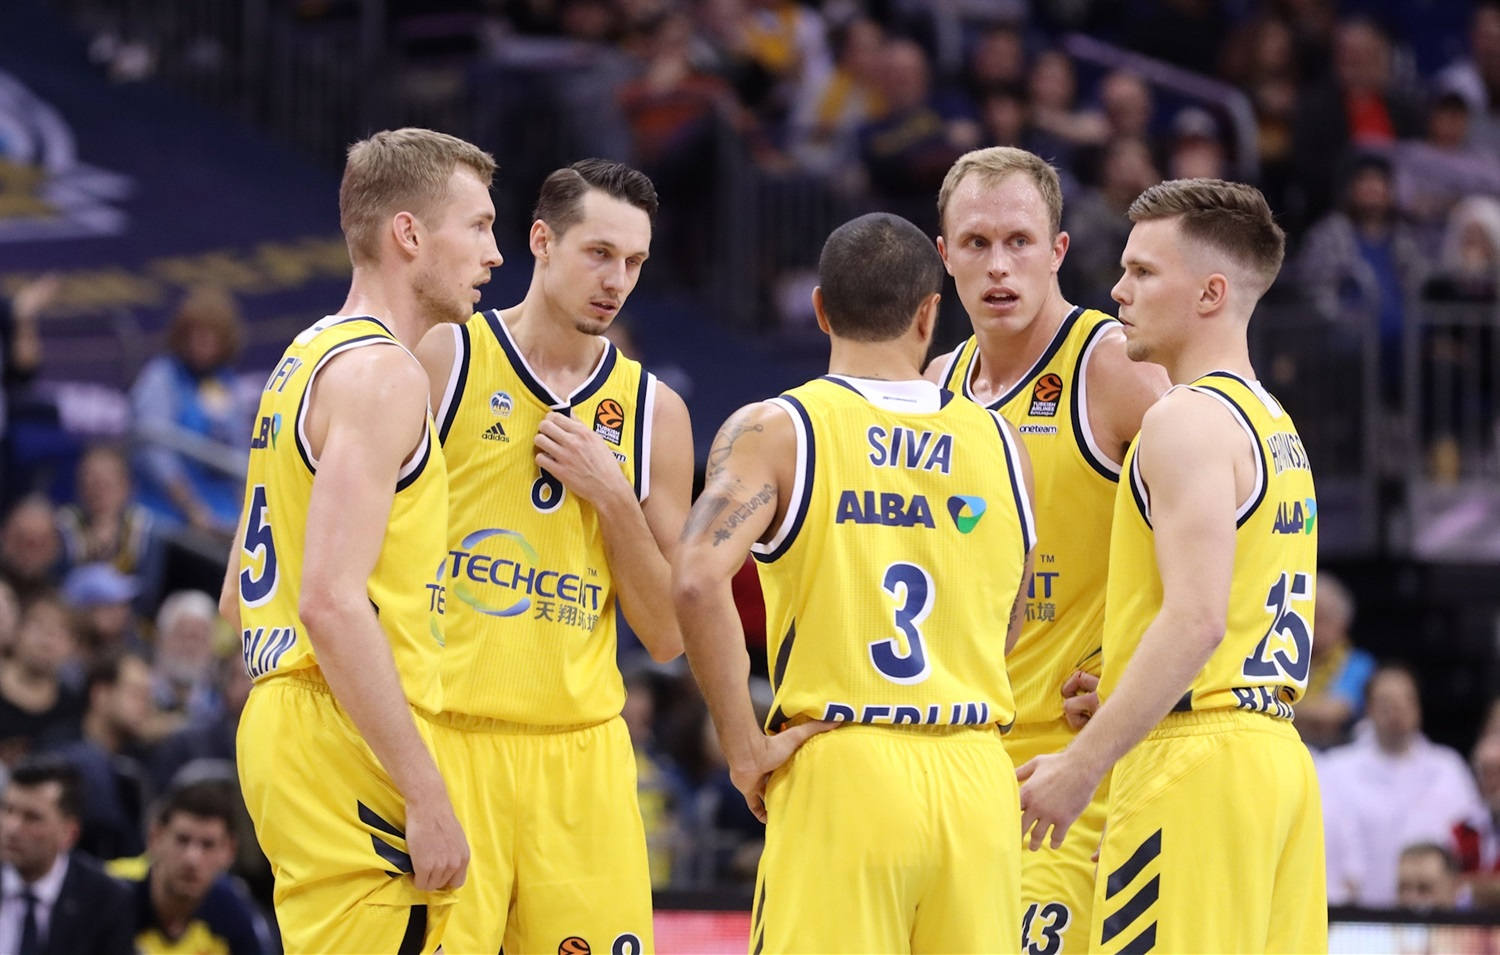 Players  ALBA Berlin - EB19